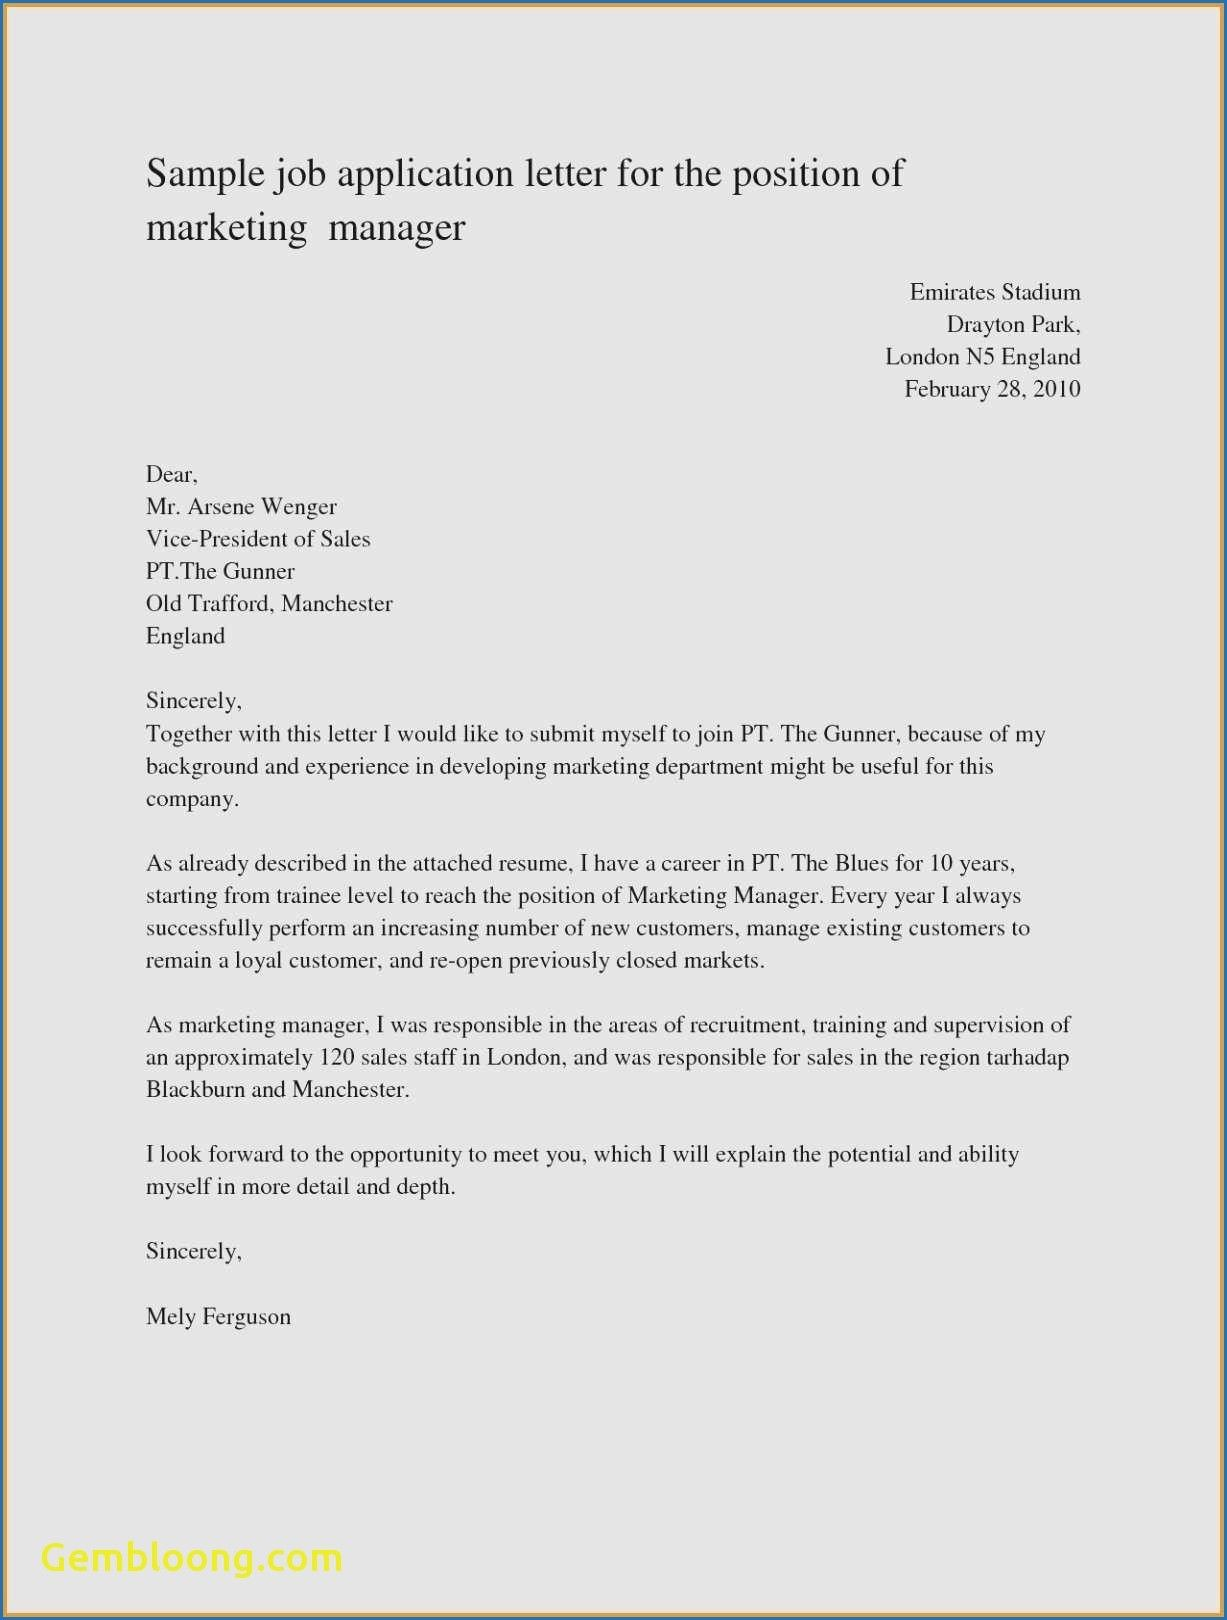 Download Unique Cover Letter Sample for A Job Position ...